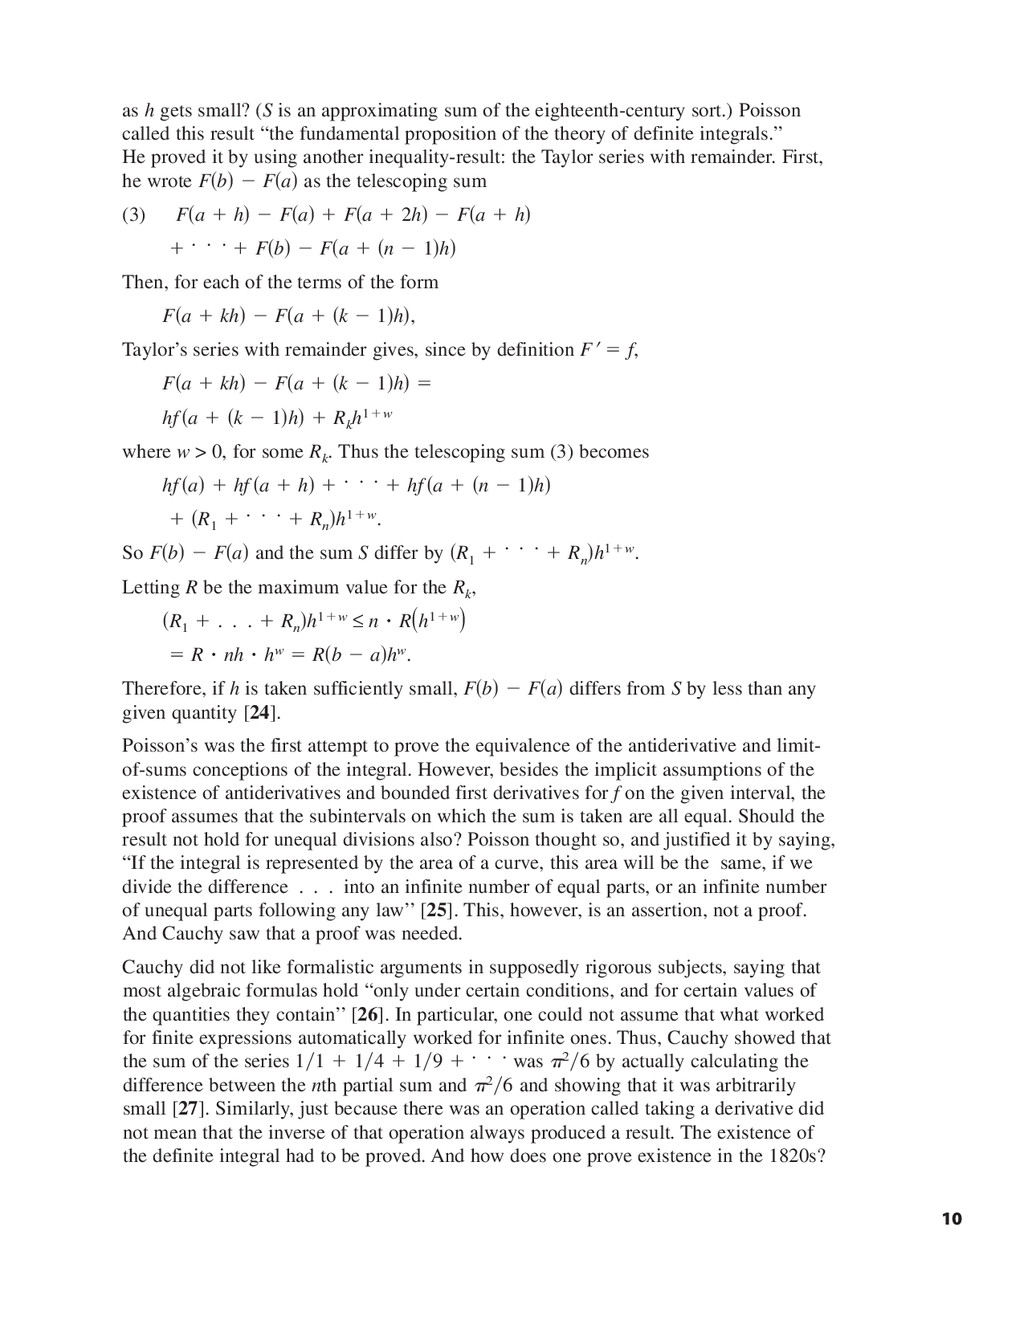 as h gets small? (S is an approximating sum of ...